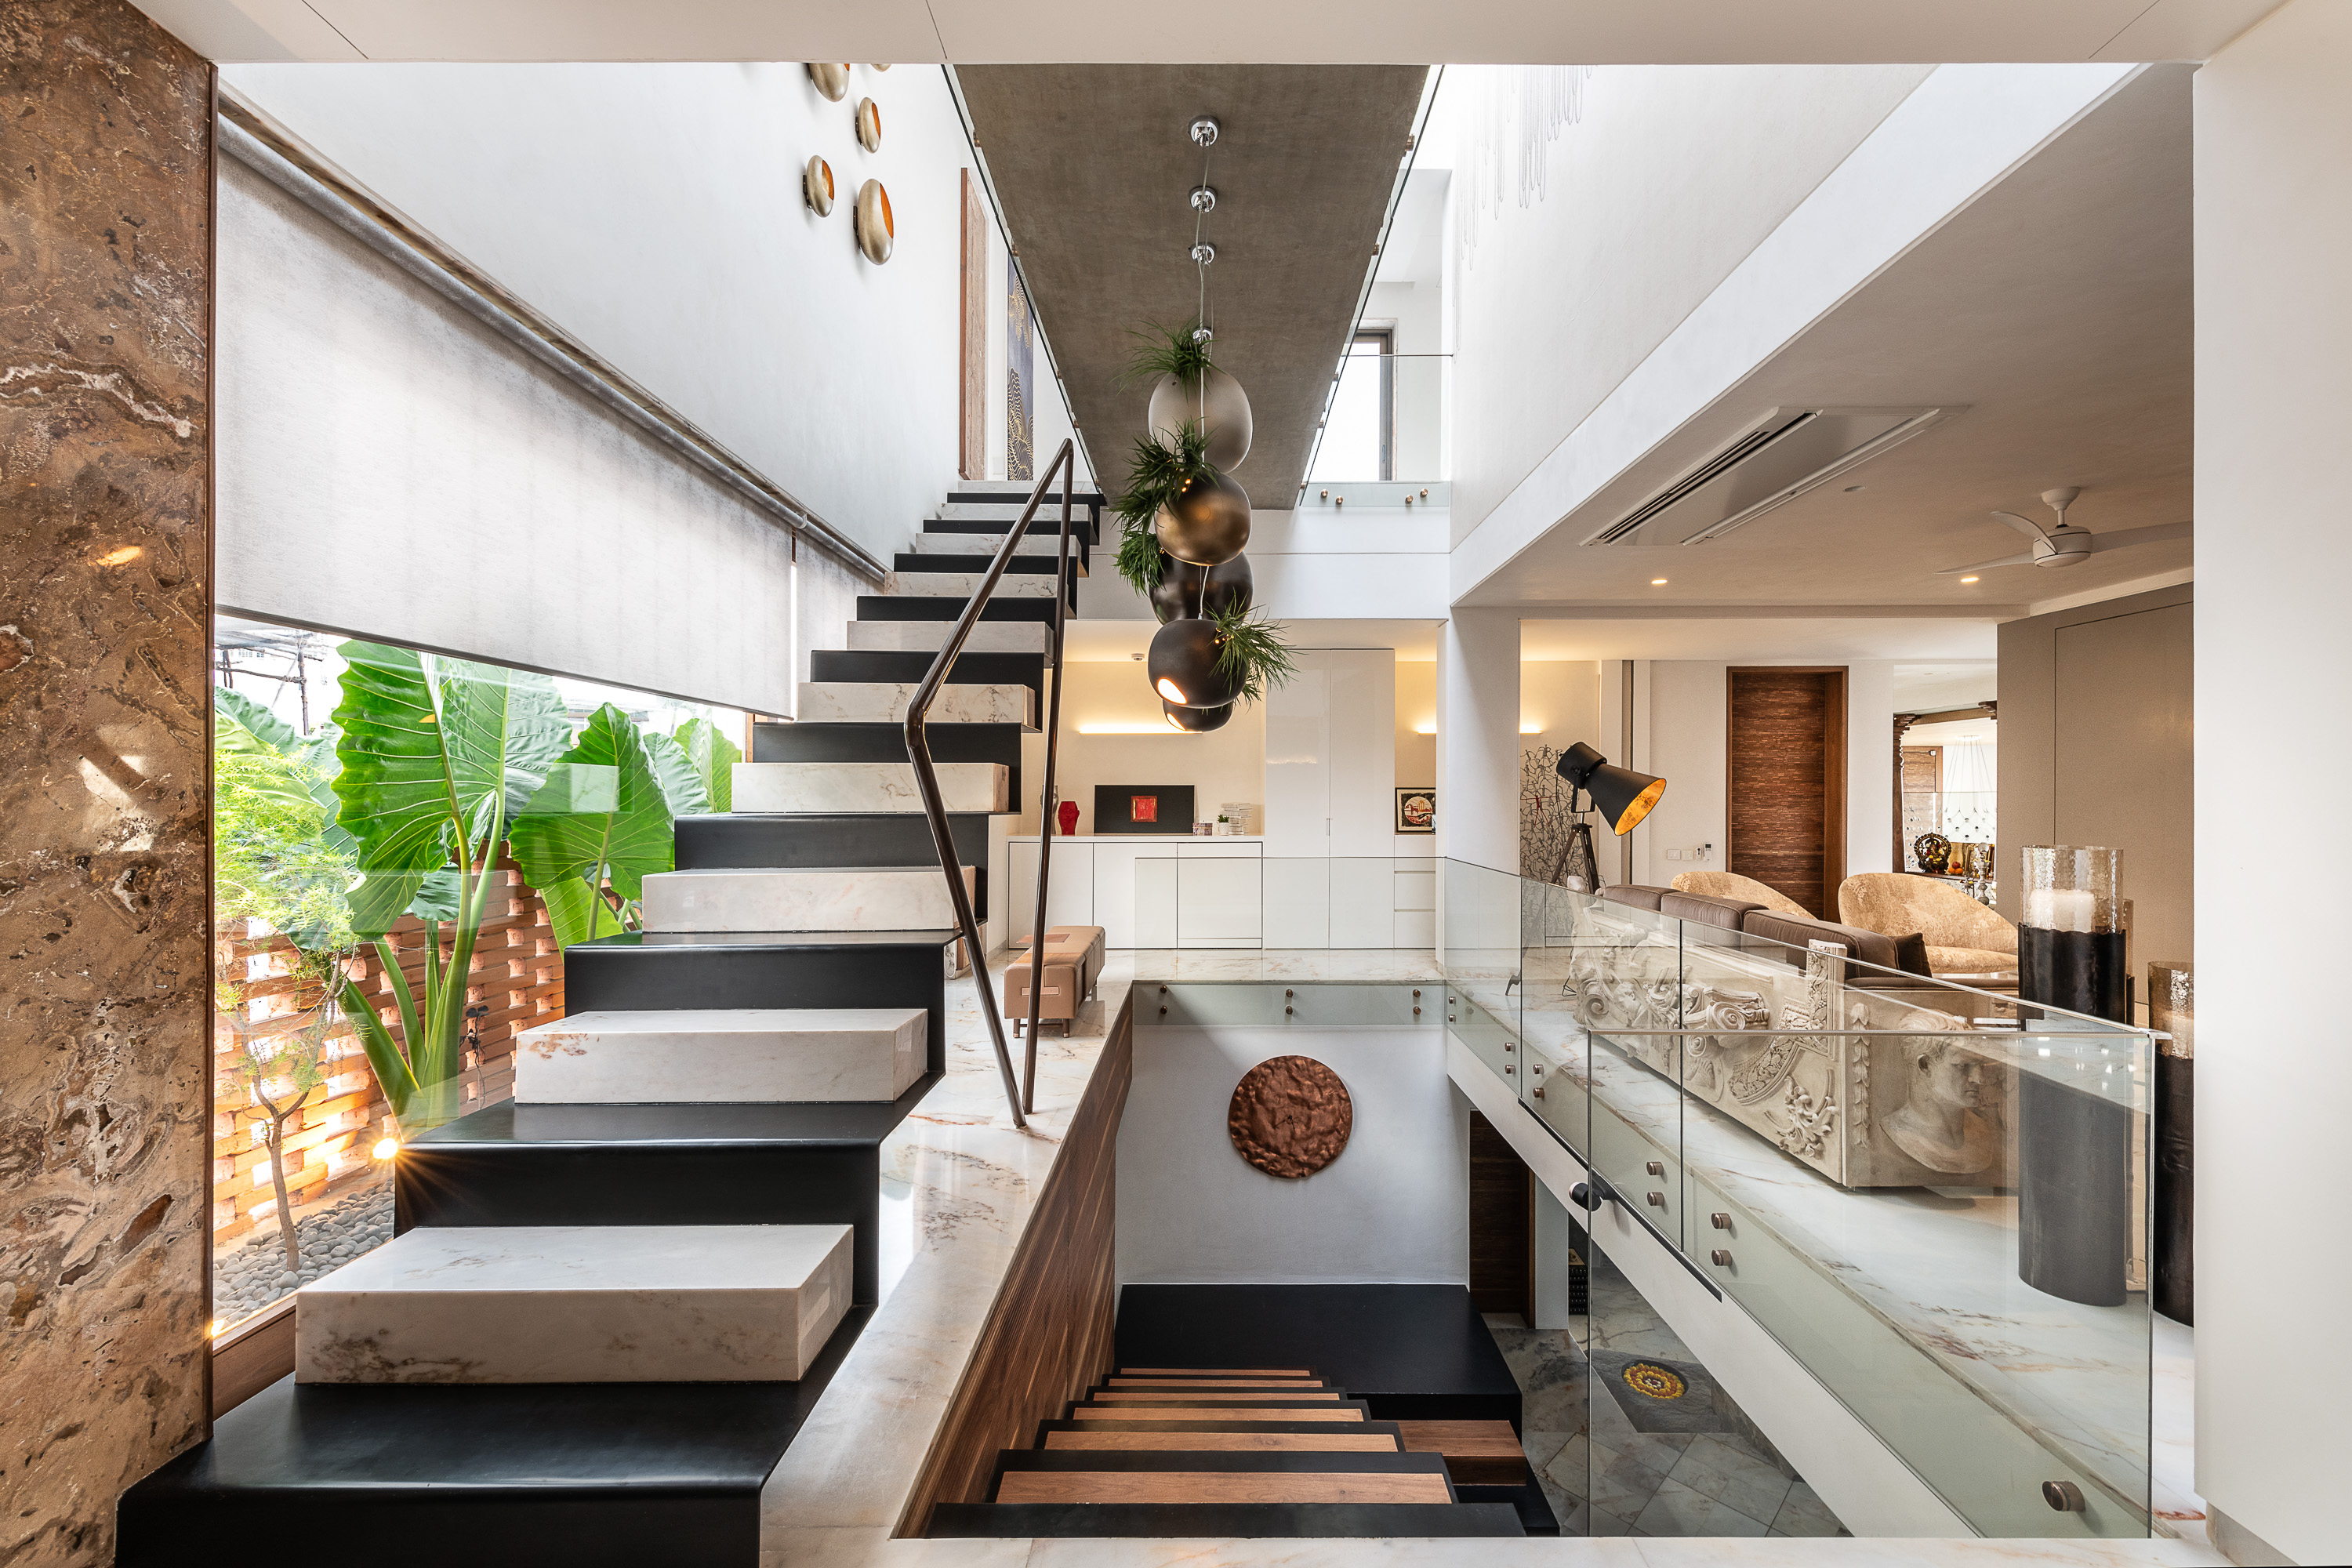 Sustainability Meets Luxury In This Private Residence by NA Architects (9) na architects Sustainability Meets Luxury In This Private Residence by NA Architects Sustainability Meets Luxury In This Private Residence by NA Architects 9